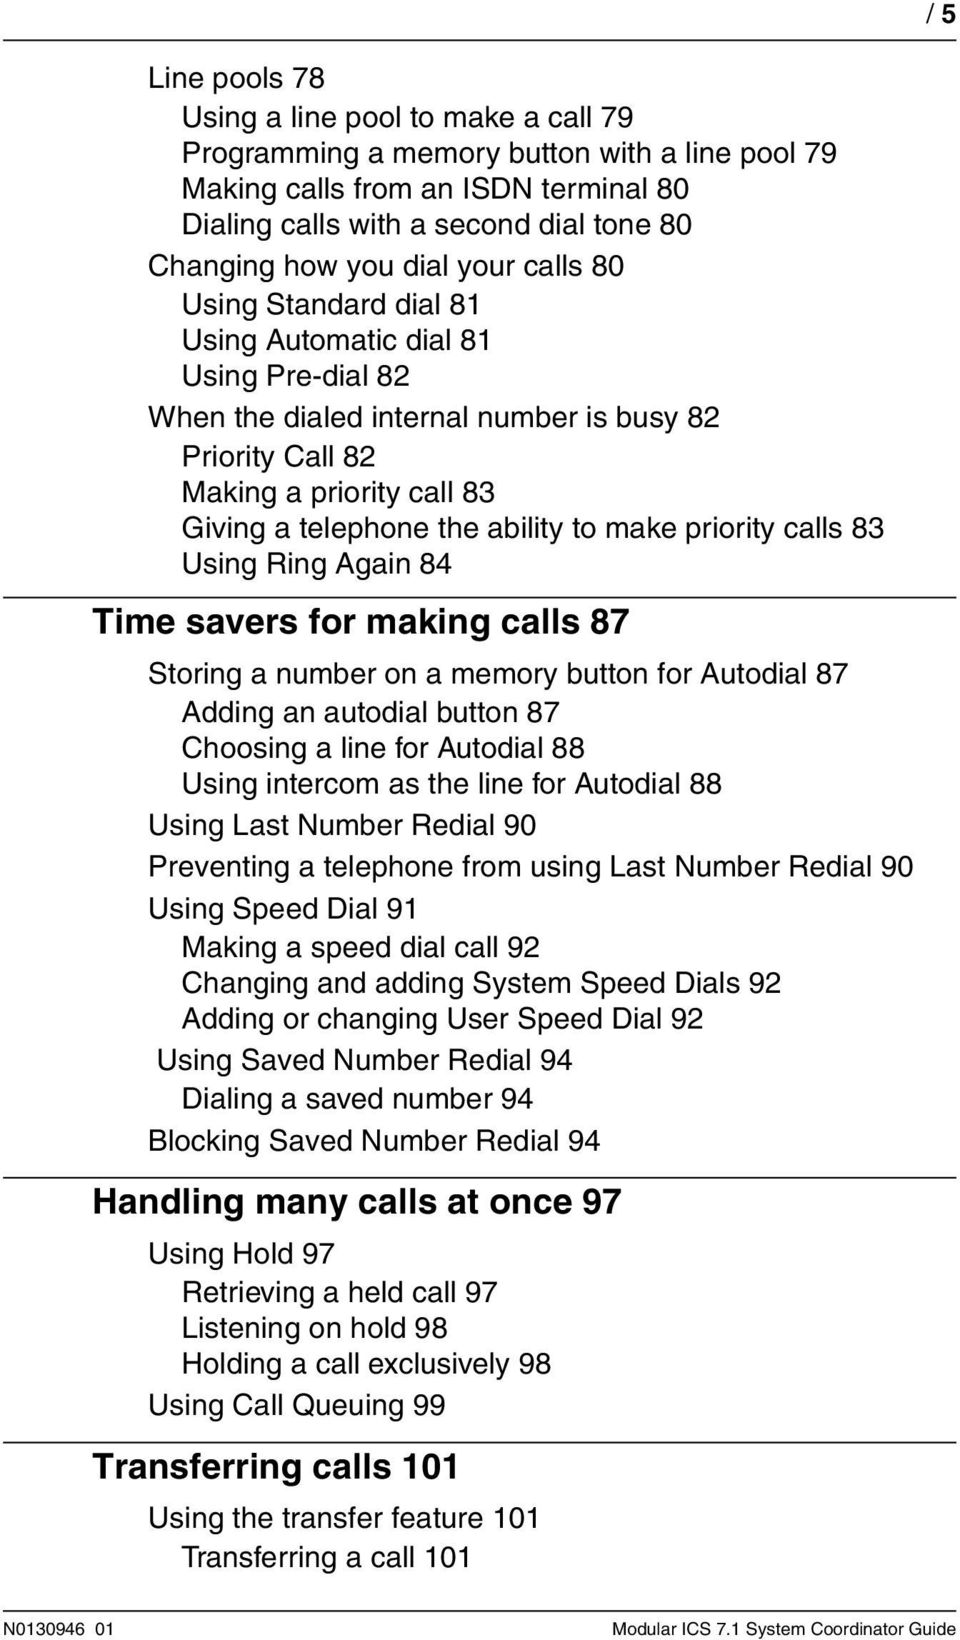 ability to make priority calls 83 Using Ring Again 84 Time savers for making calls 87 Storing a number on a memory button for Autodial 87 Adding an autodial button 87 Choosing a line for Autodial 88